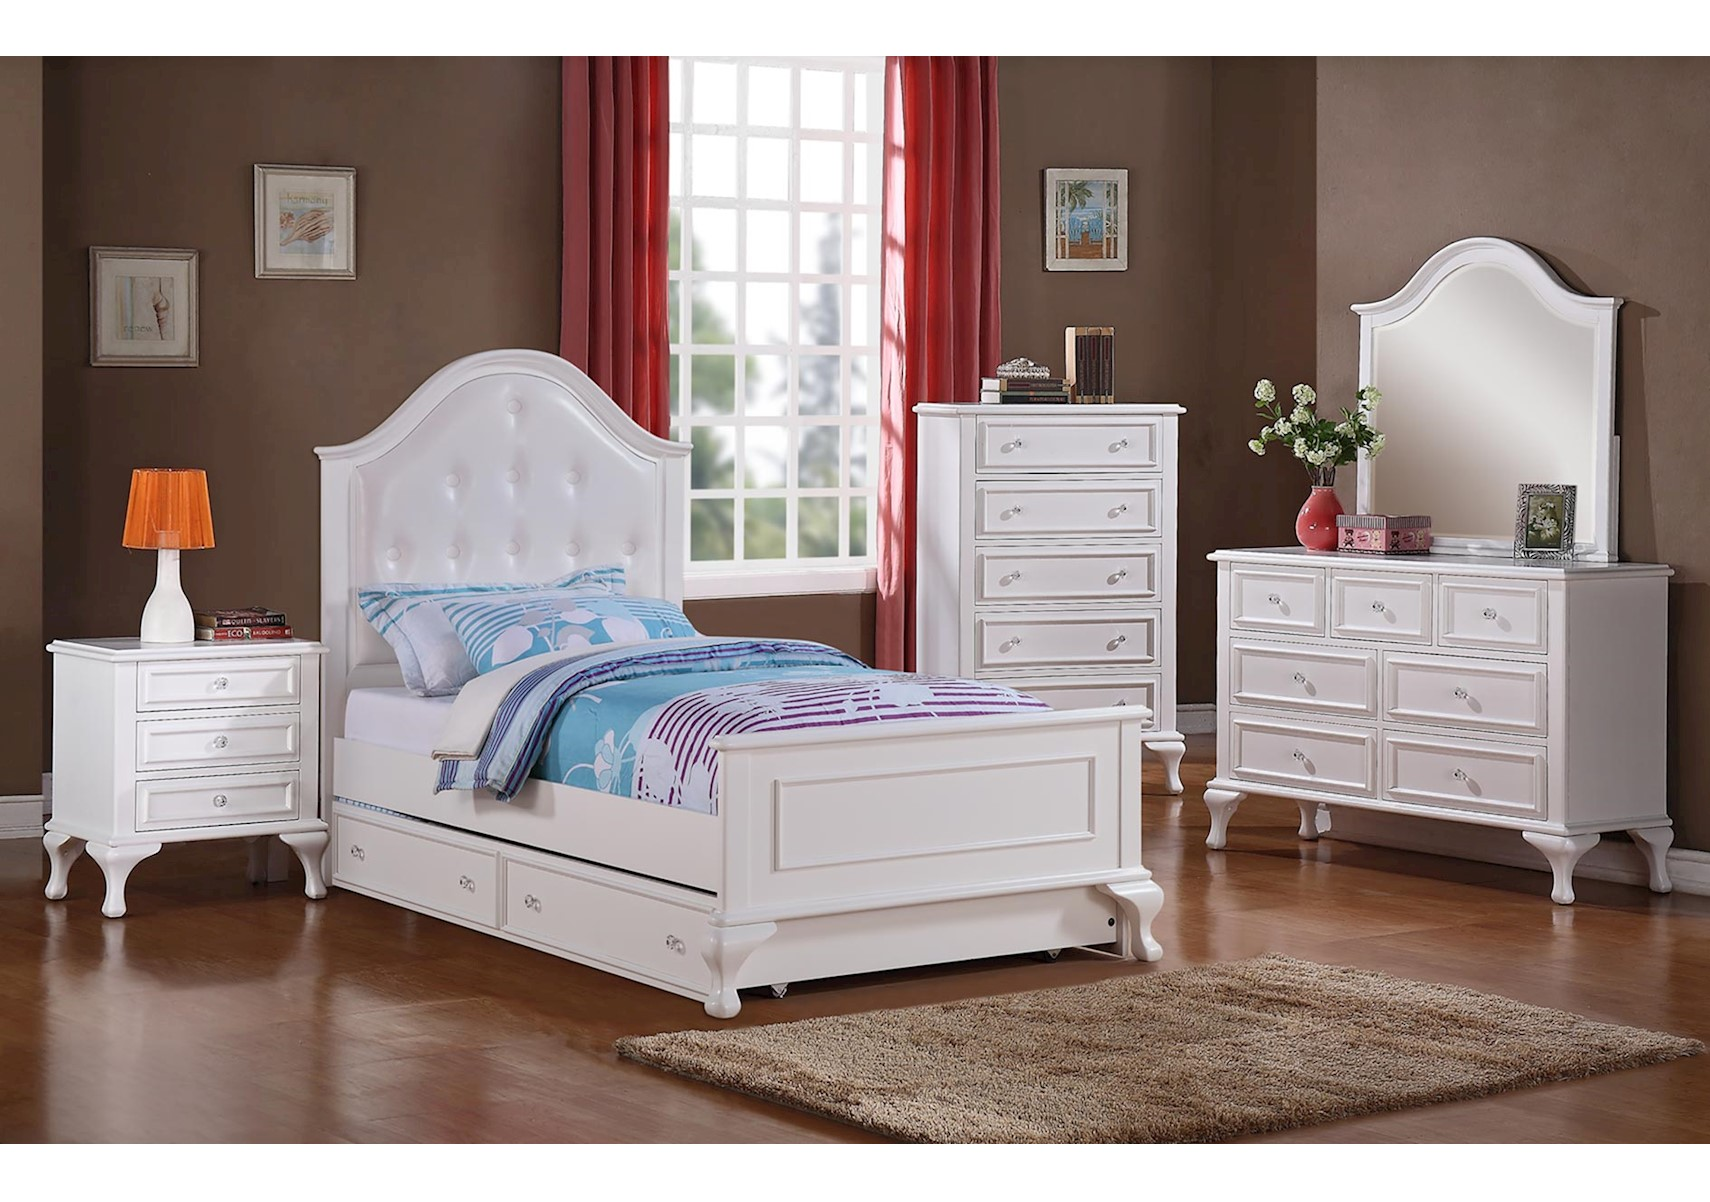 Lacks | Jesse 4-Pc Kids Bedroom Set